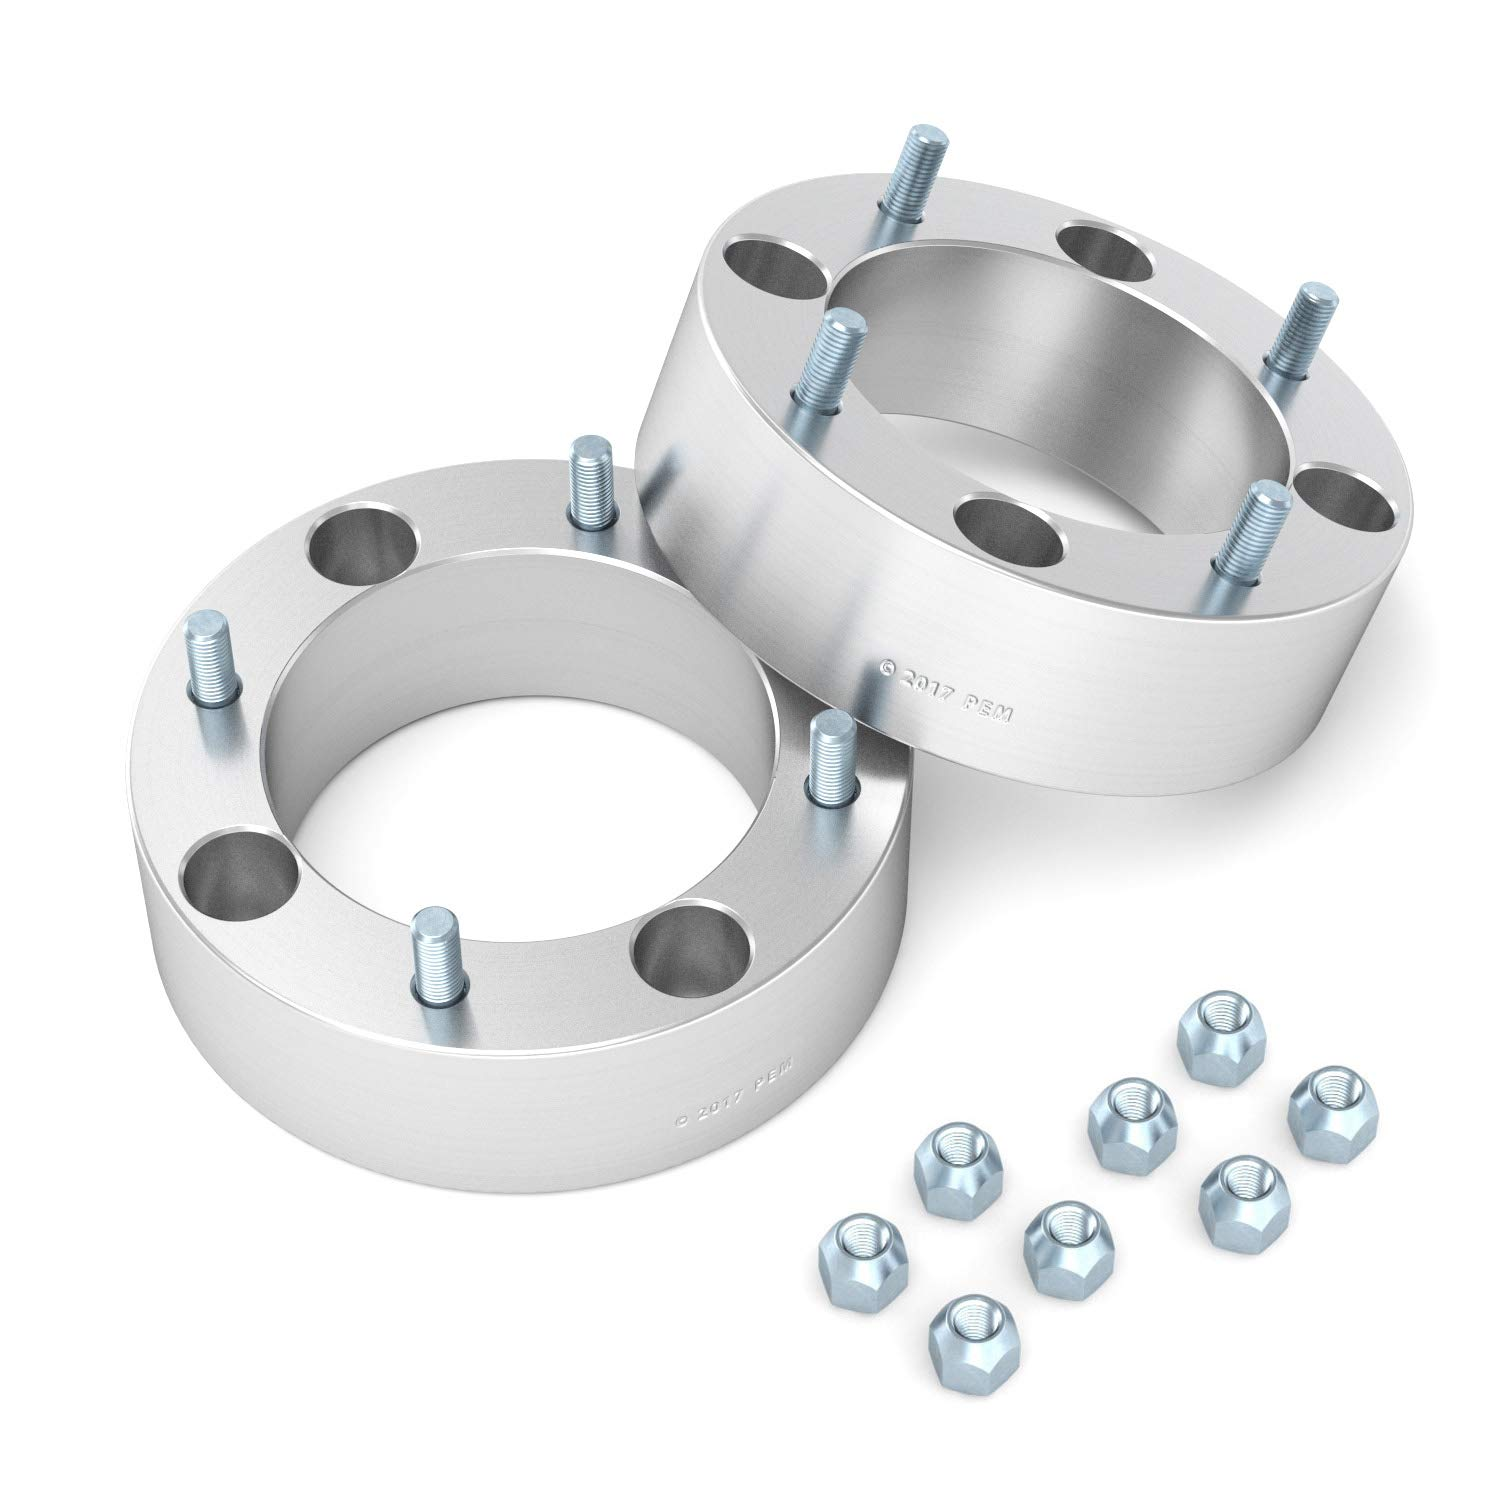 RockTrix for Precision European (4) 2'' Thick 4x137 ATV Wheel Spacers - 10x1.25 Studs for Kawasaki Can Am Can-Am: Brute Force Mule Outlander Commander Maverick Renegade Bombardier, bobcat wheel spacers by RockTrix (Image #4)